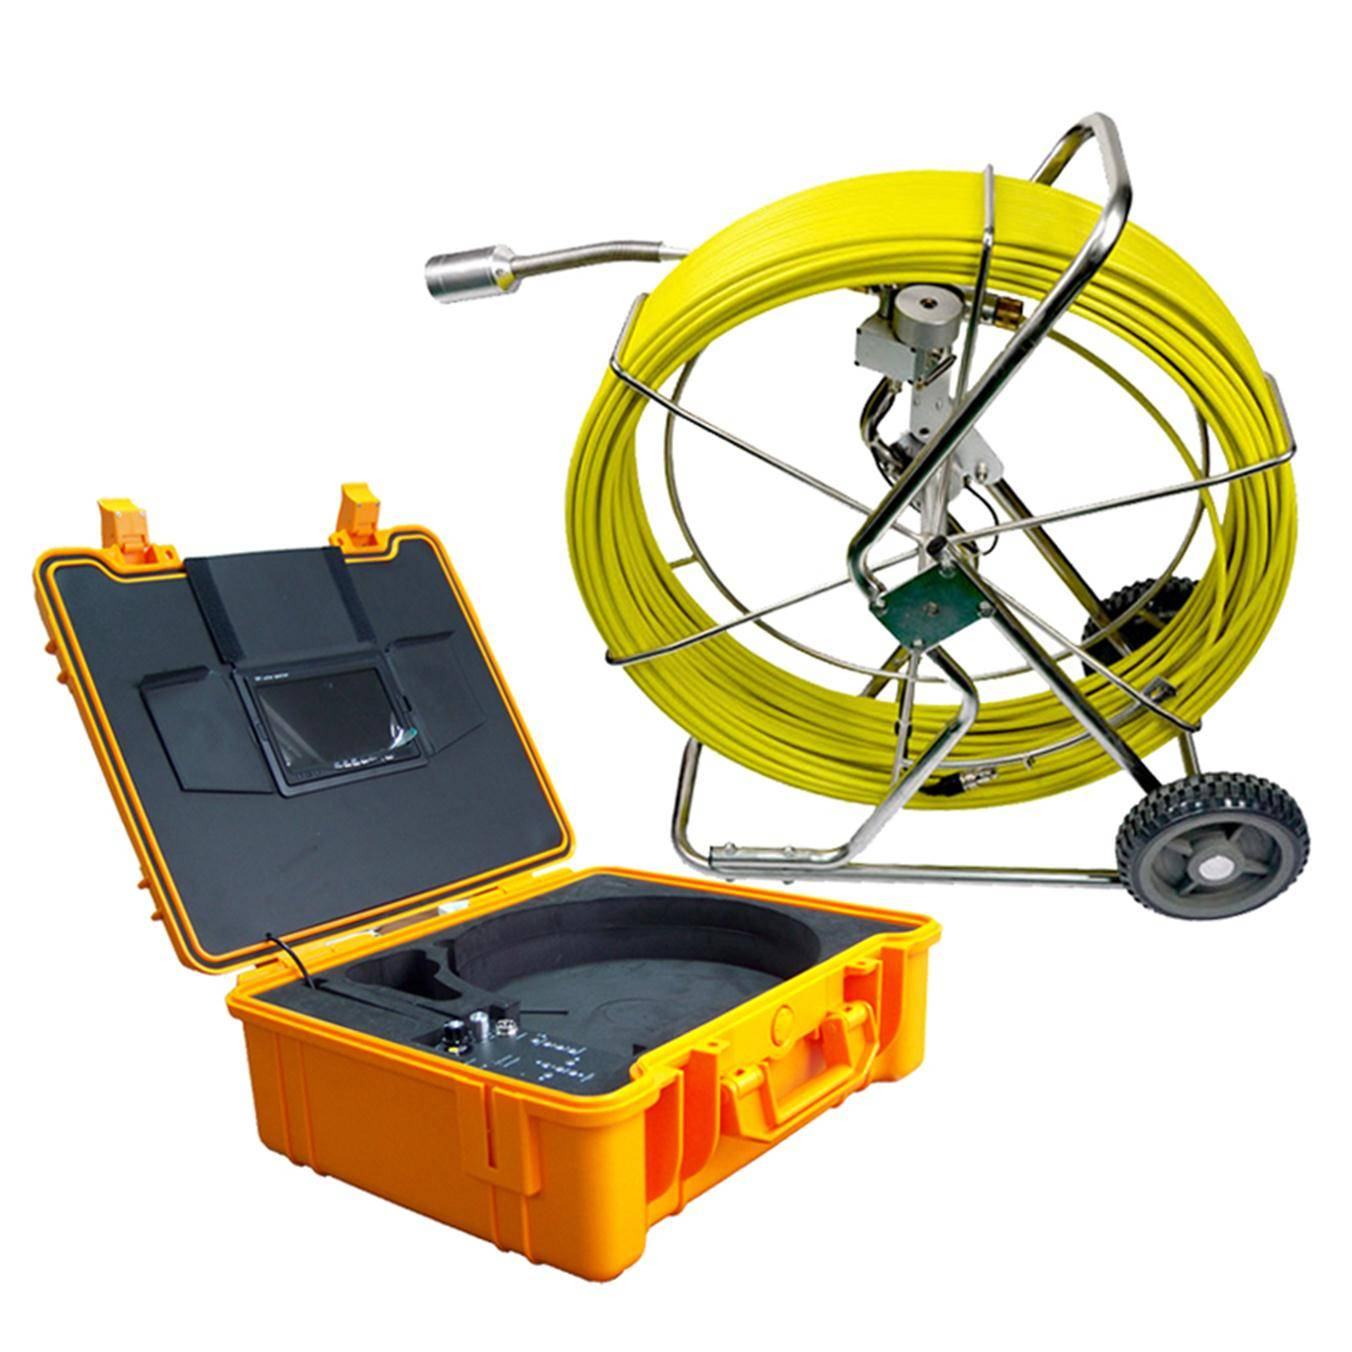 Pipe/sewer/drain inspection with video camera